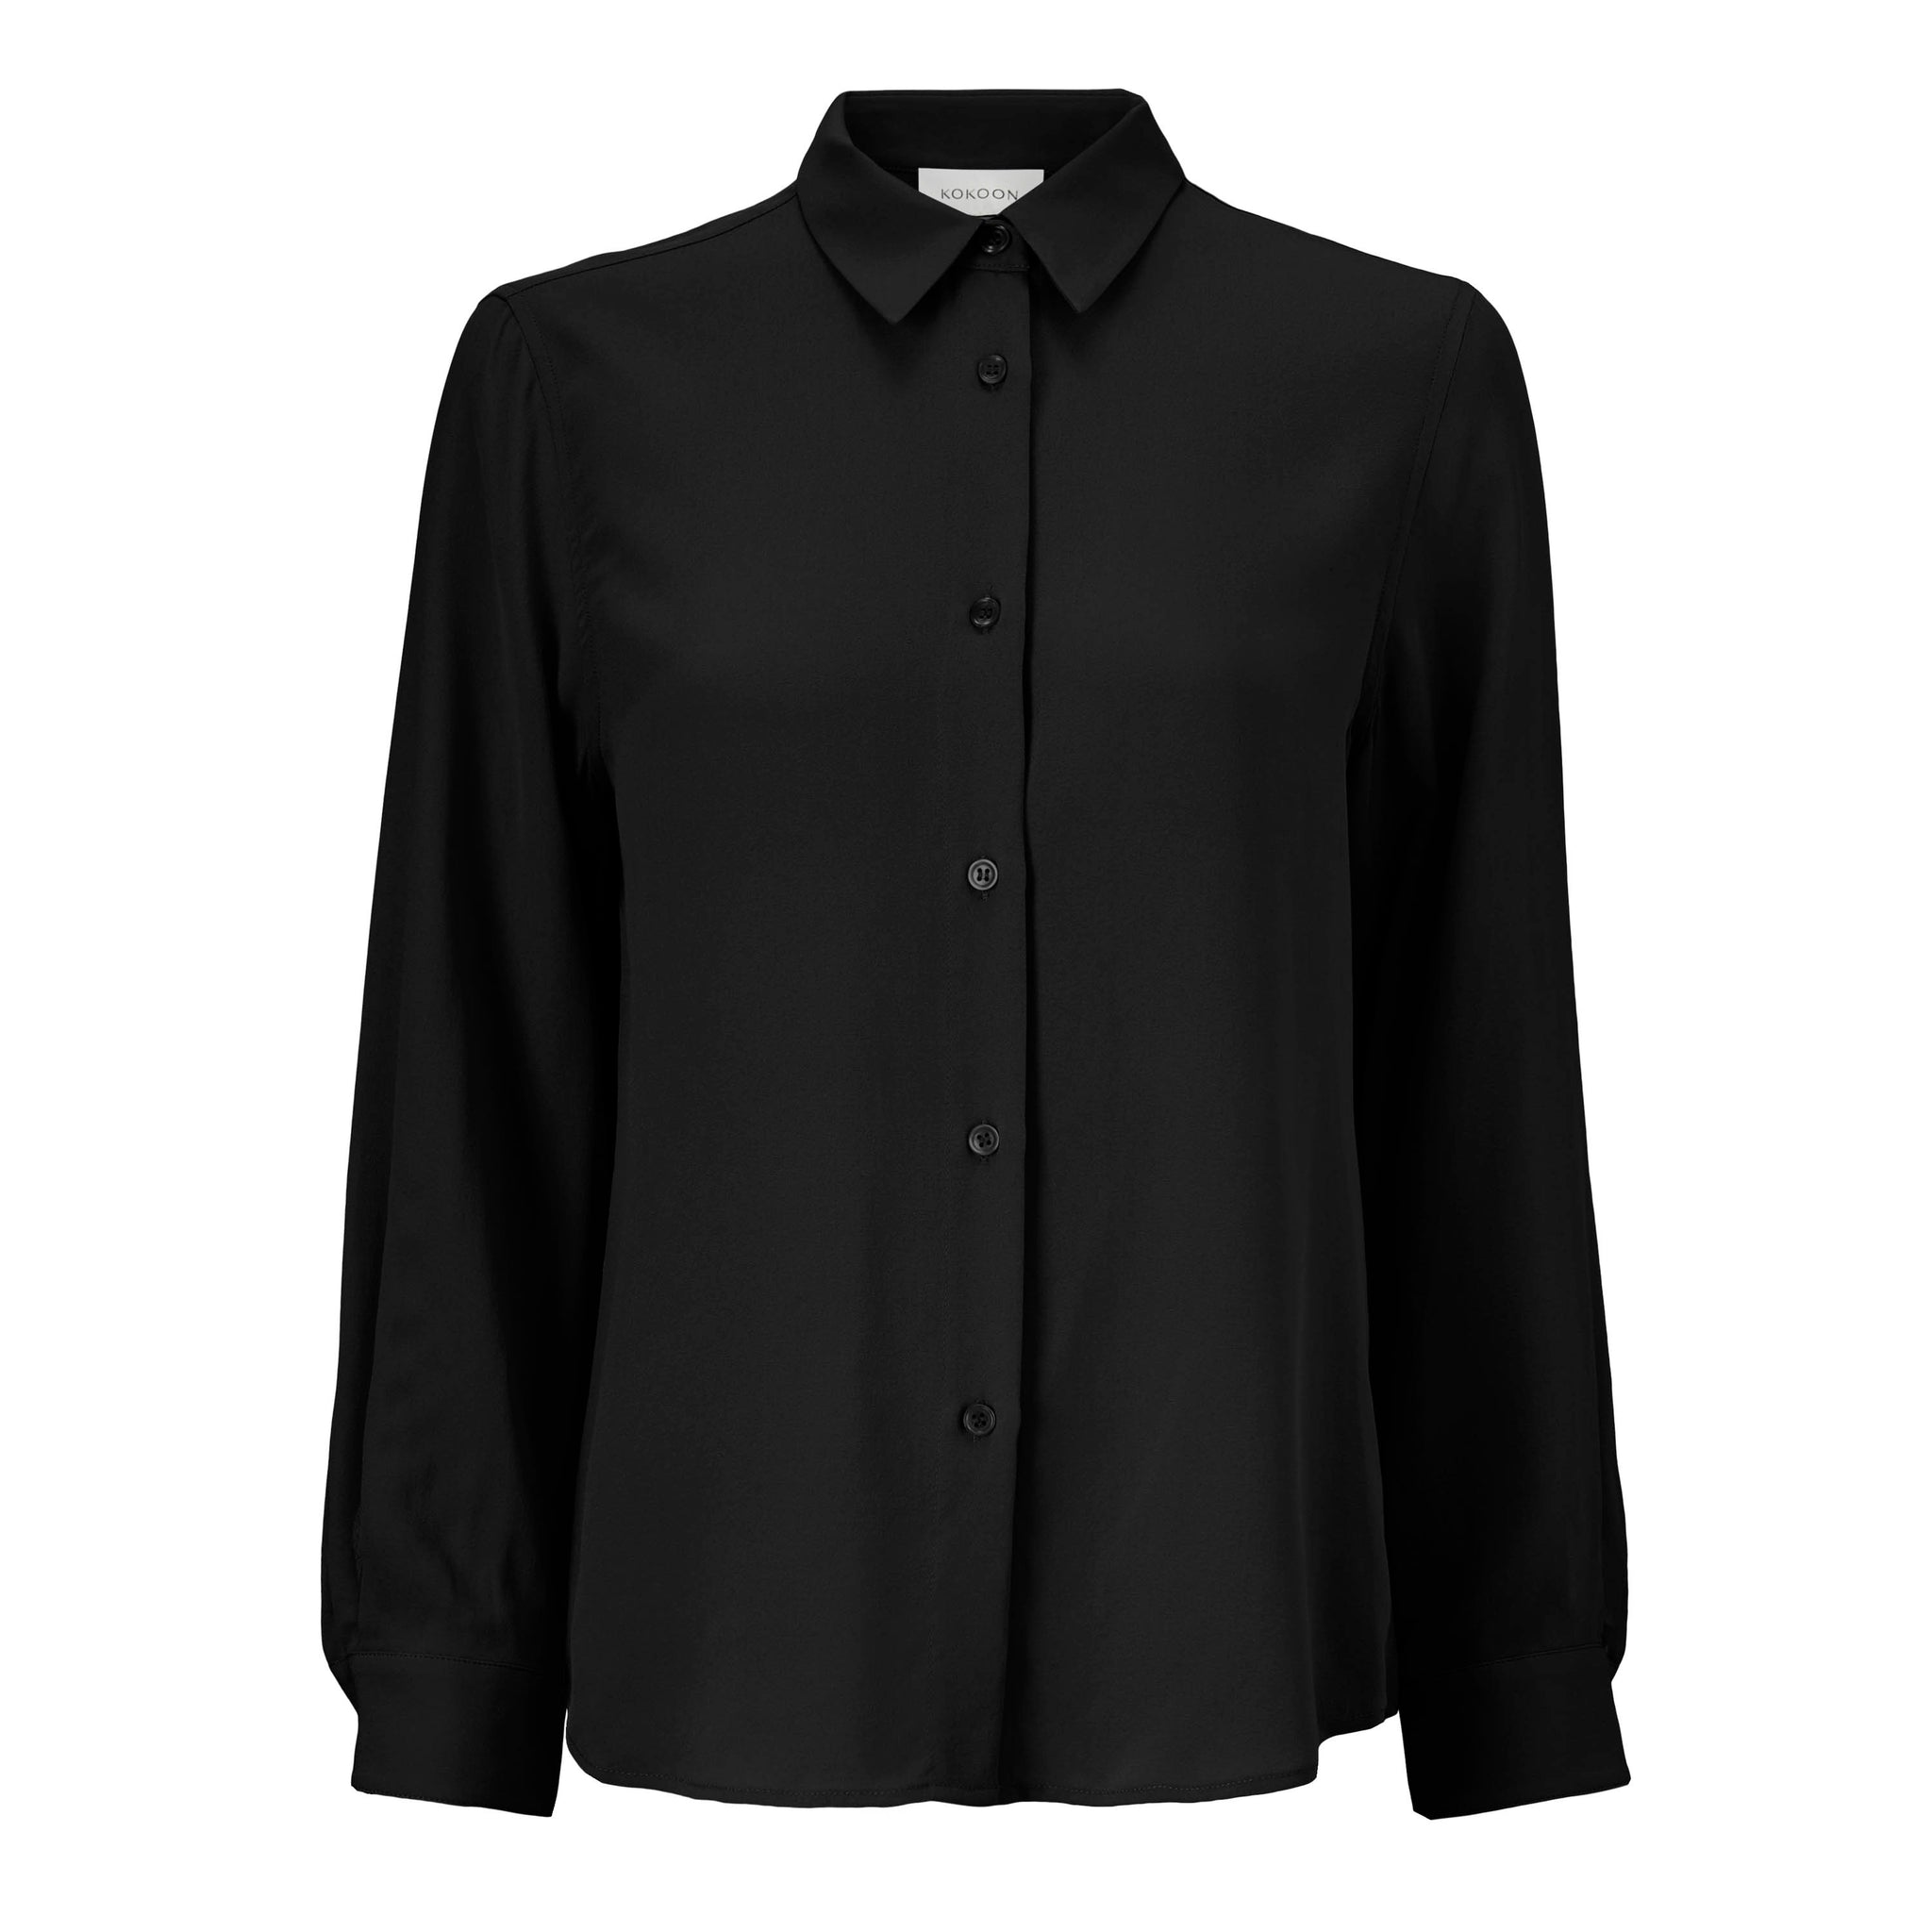 Sonja Shirt - Black